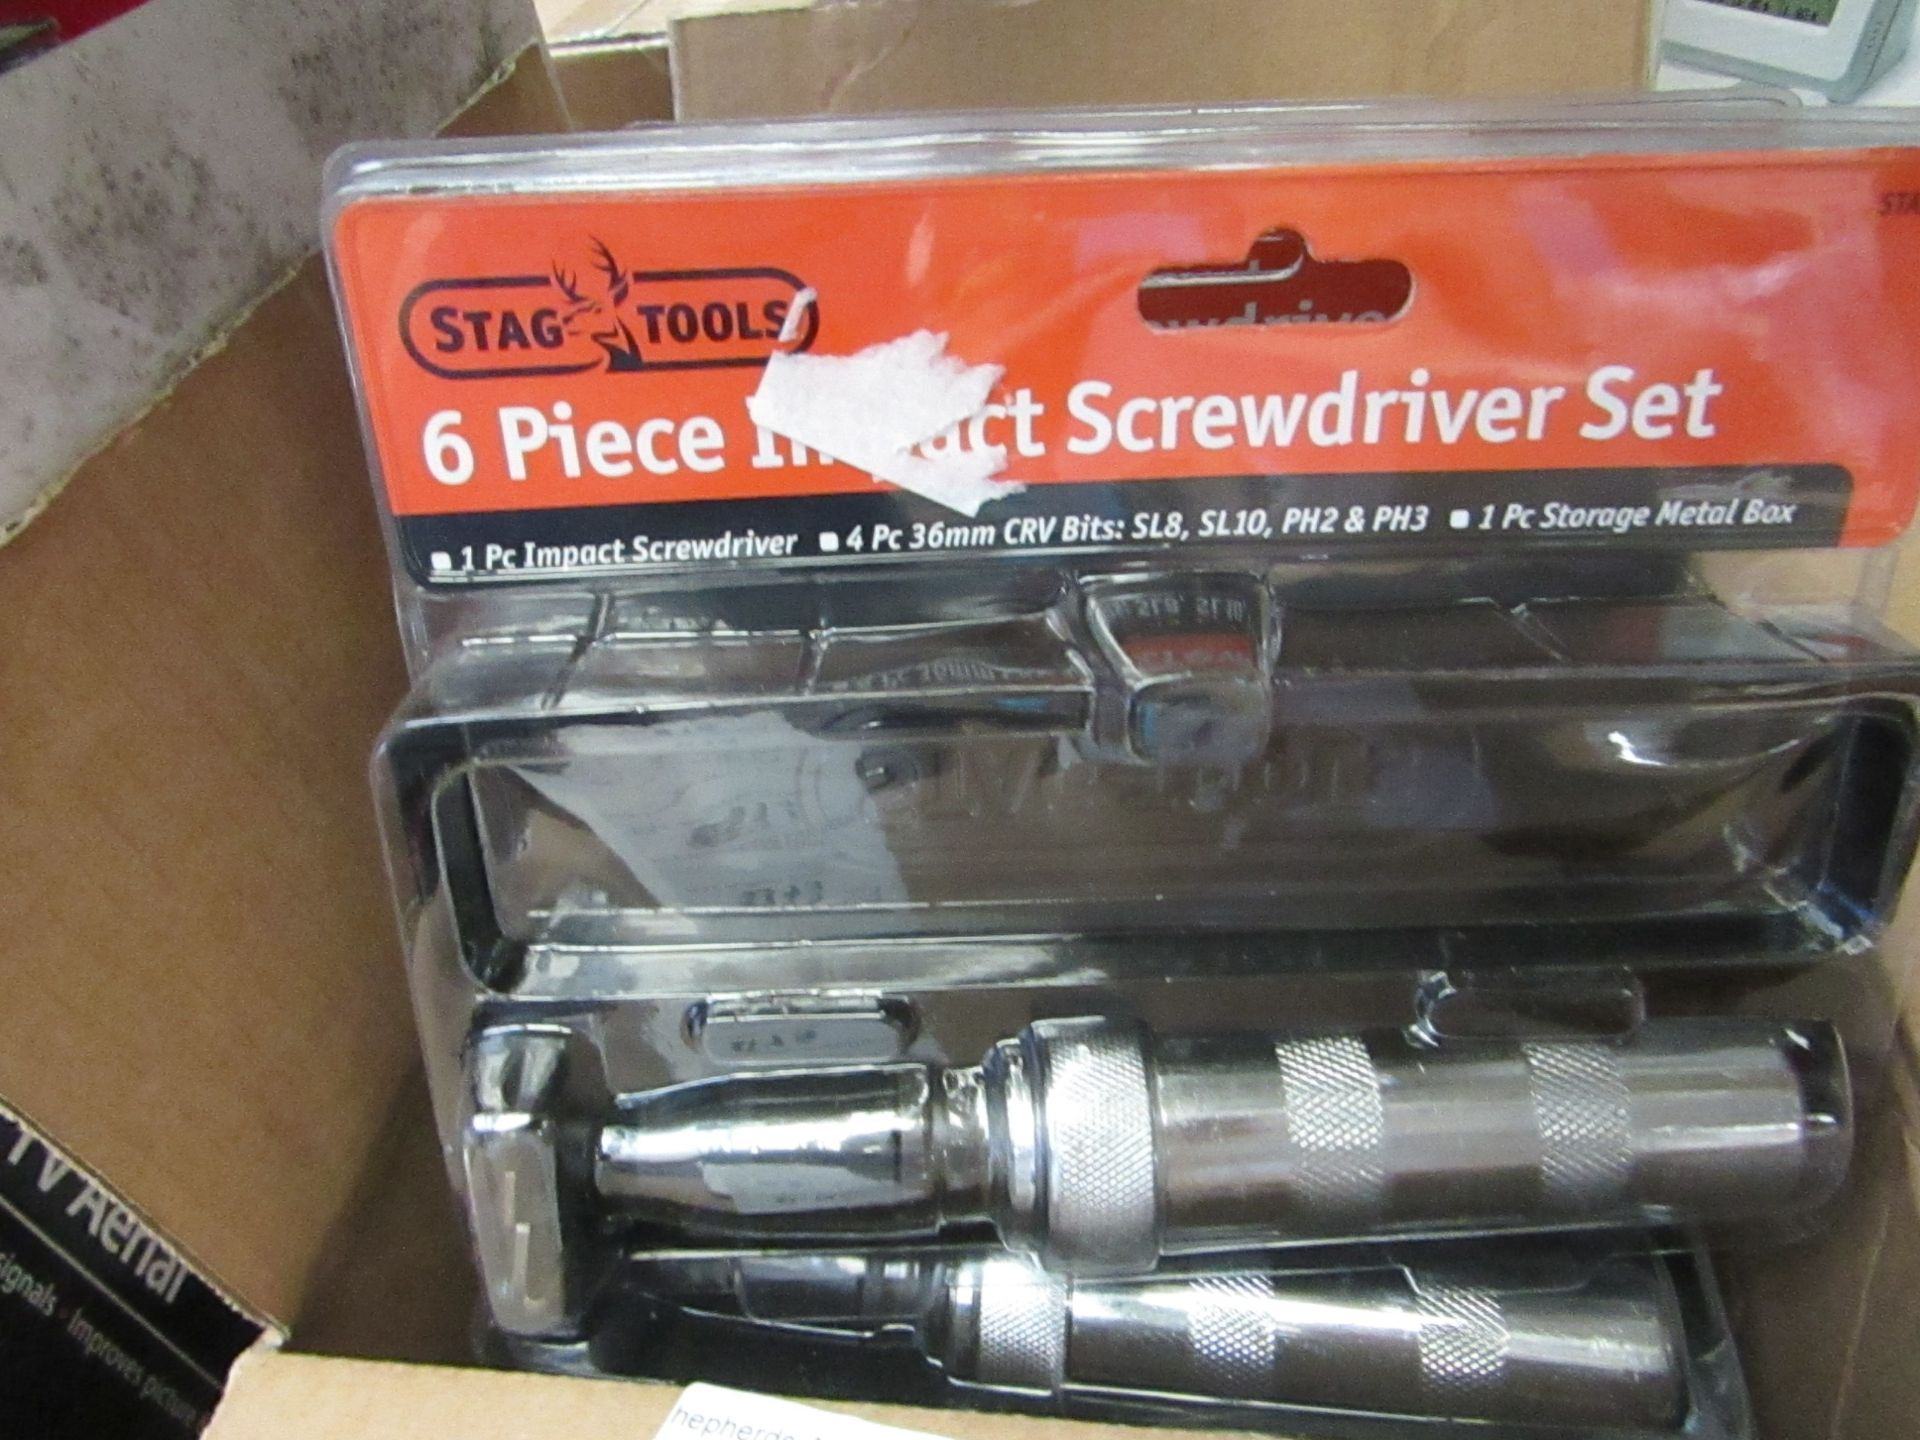 Lot 612 - Stag tools 6 Piece Impact Screwdriver Set. New & Packaged